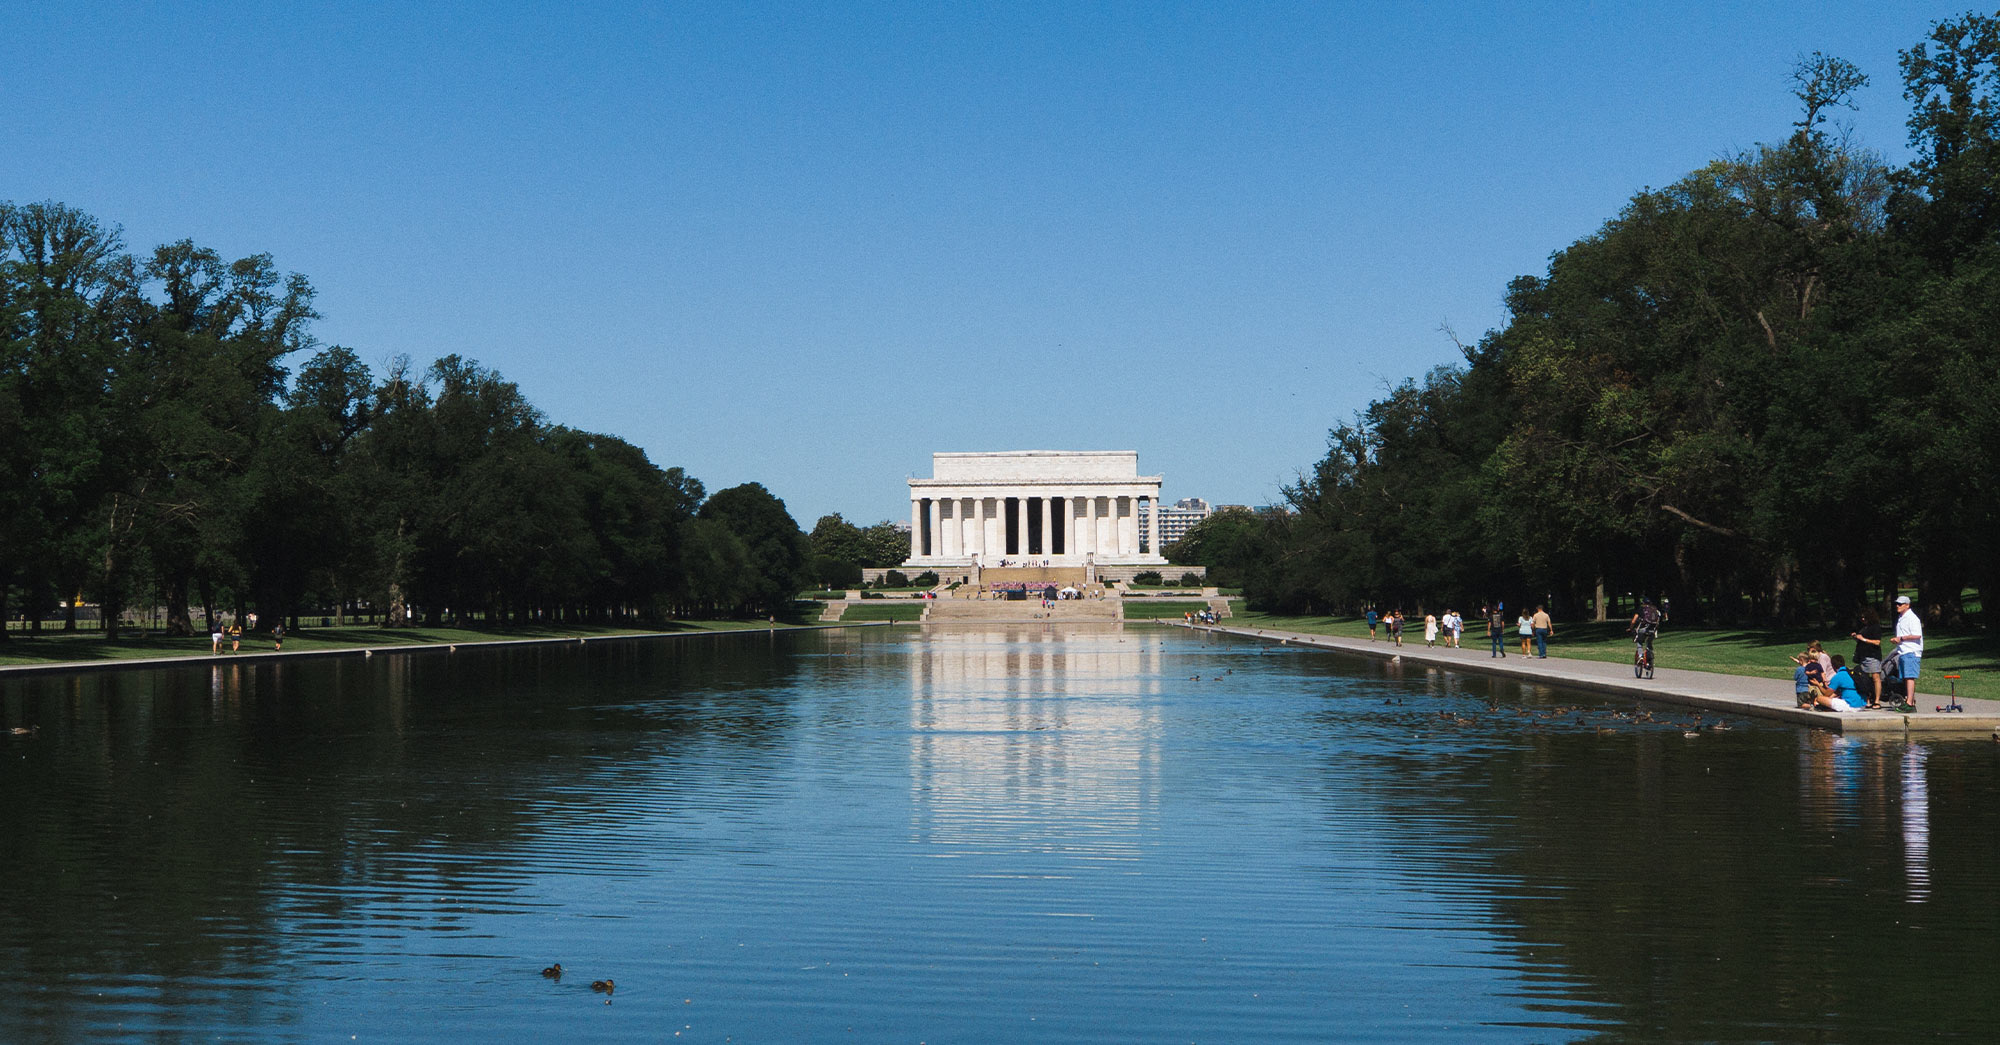 Tranquillity at the Lincoln Memorial Reflecting Pool